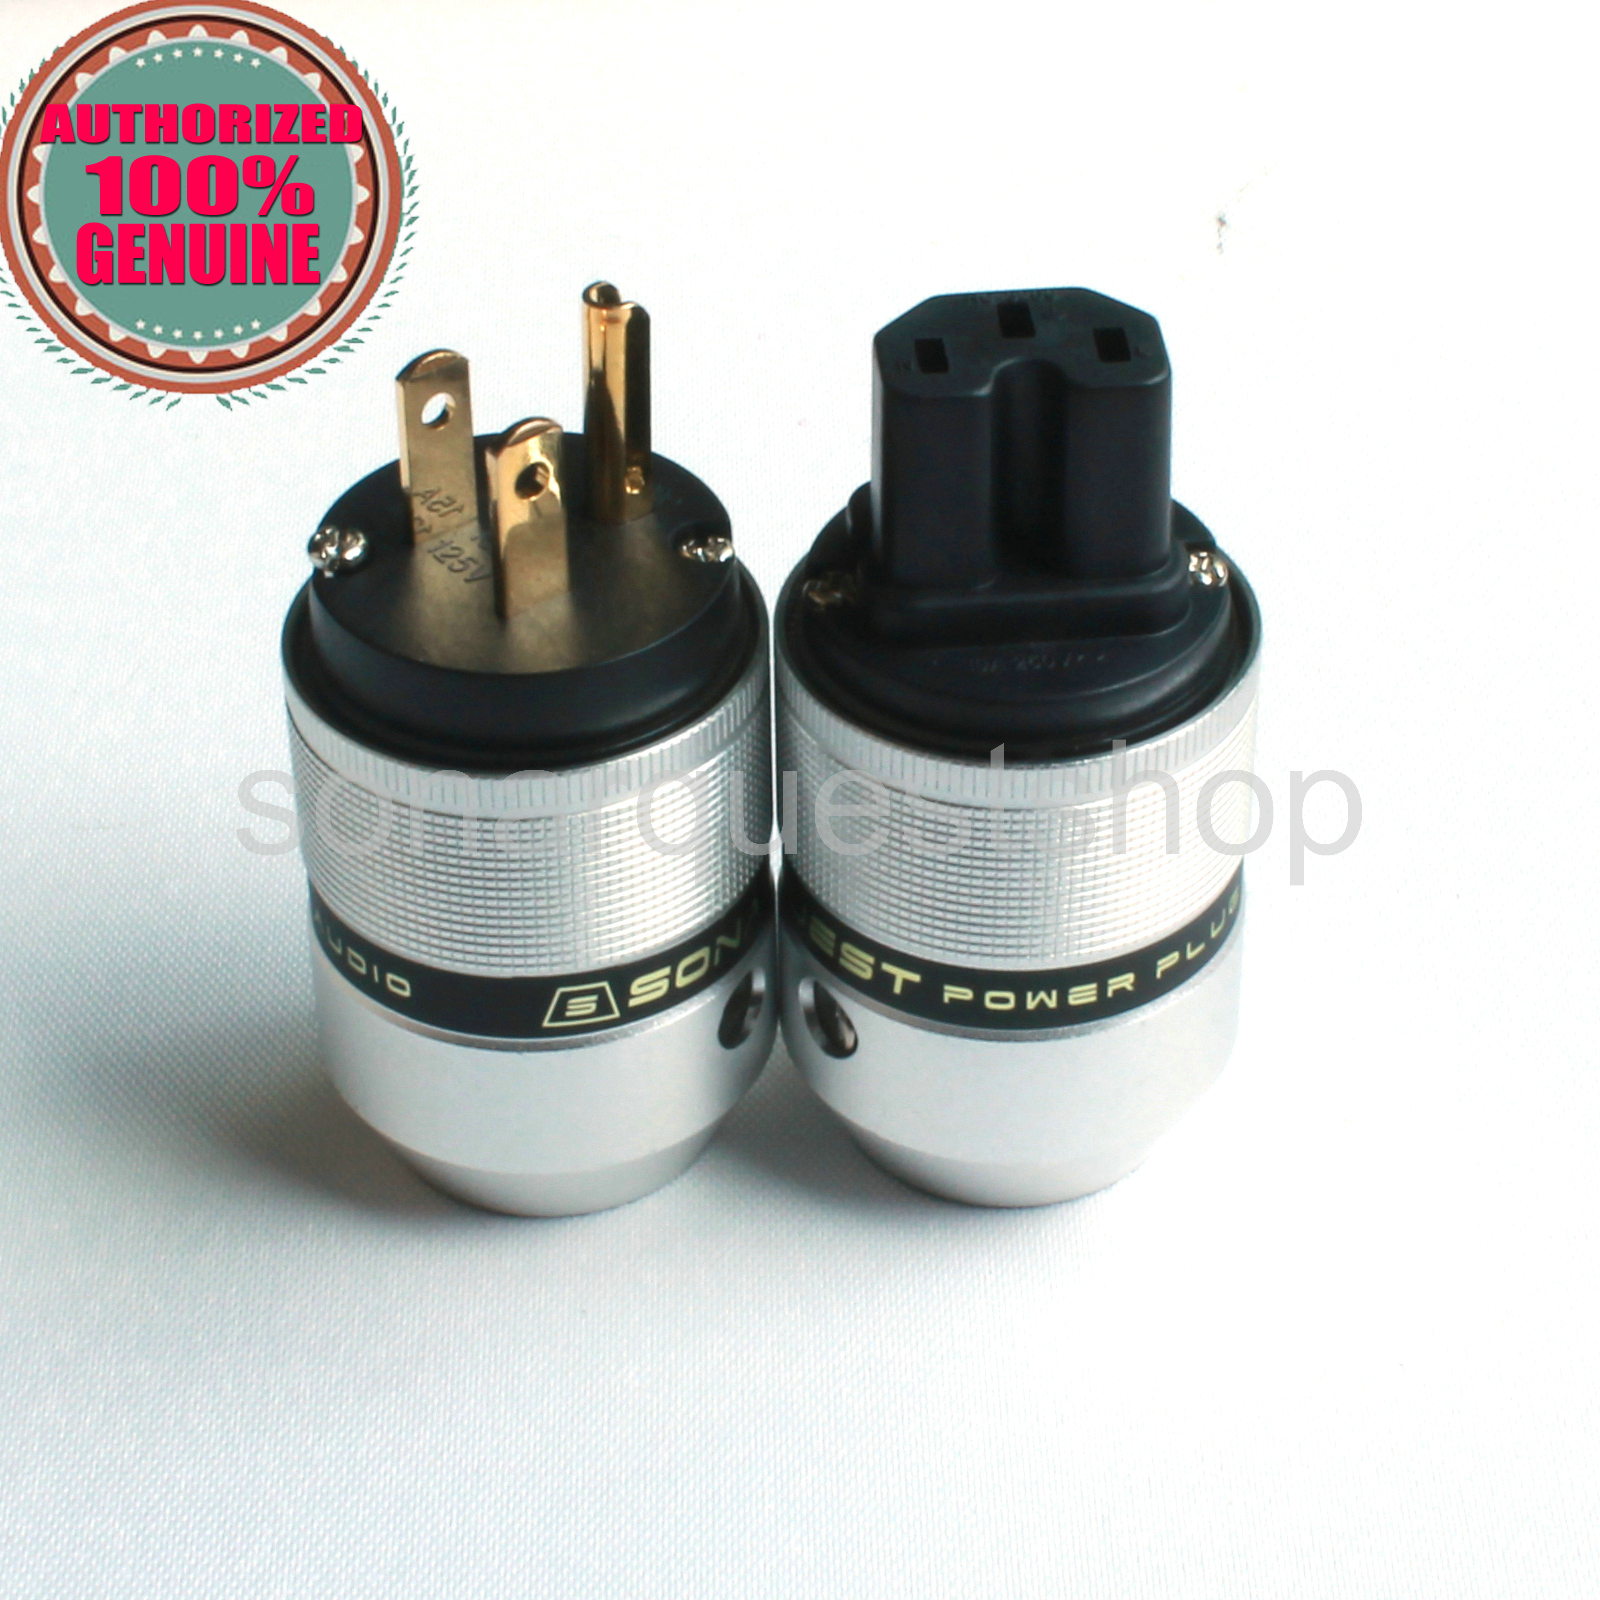 SONARQUEST P25 G(B) + C25 G(B) US Gold Plated UP Black Aluminum alloy Power Plug & IEC Connector